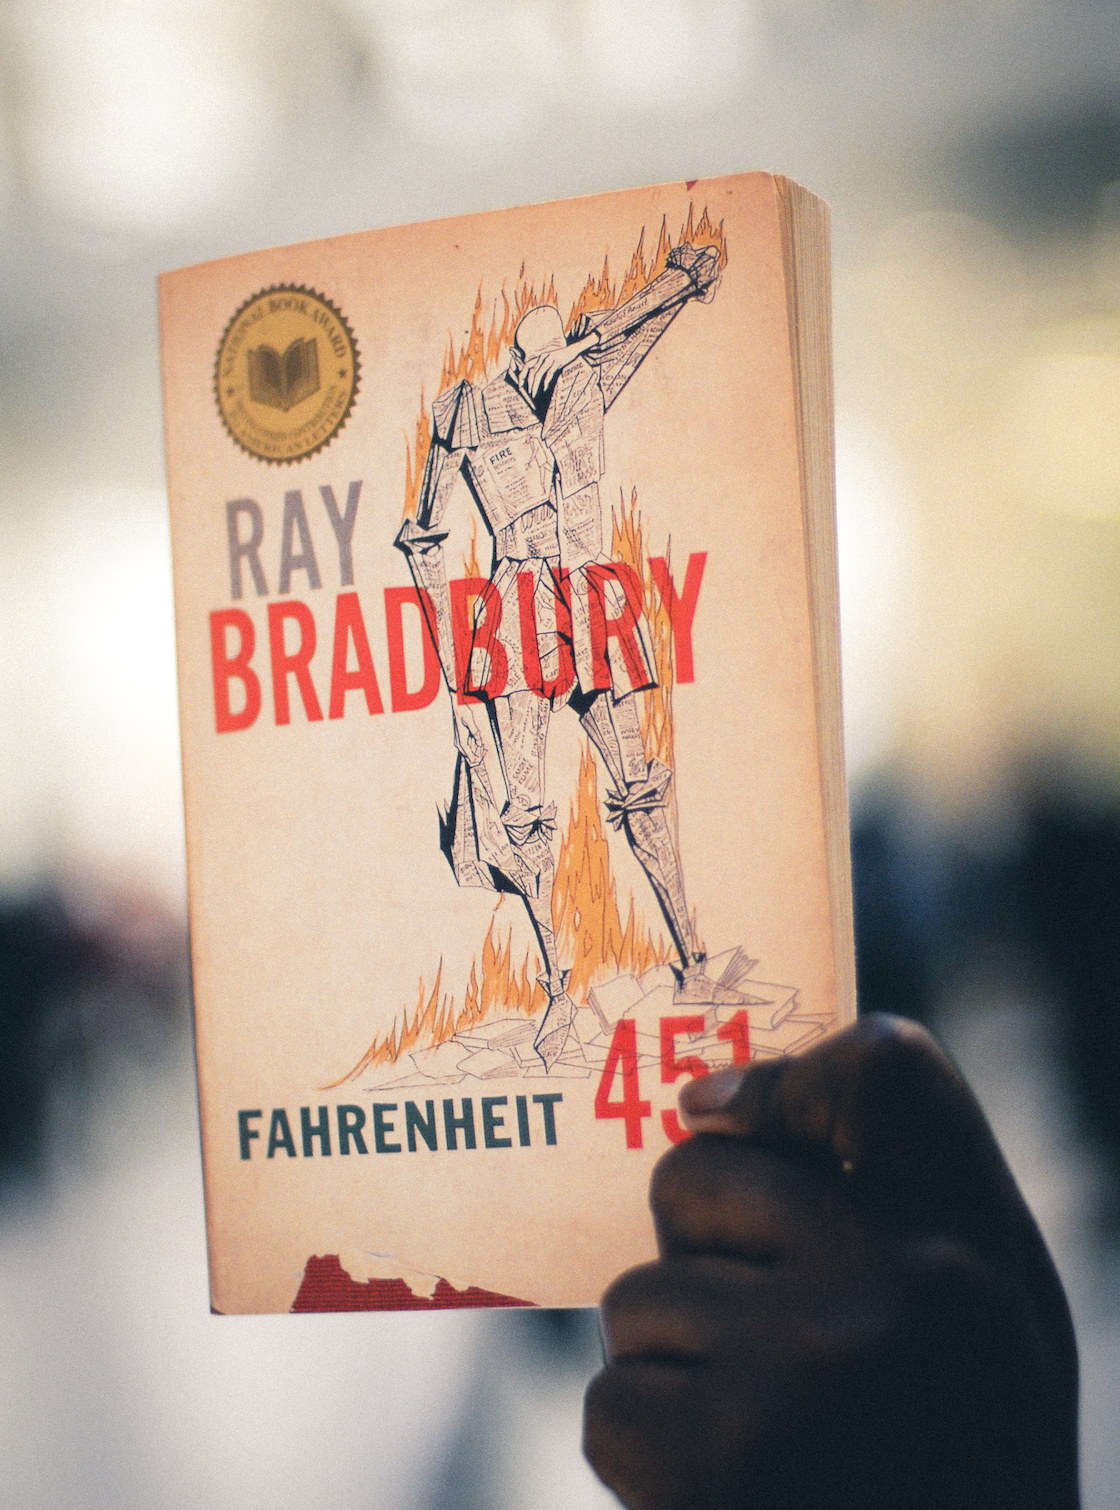 Fahrenheit 451- Ray Bradbury - 100x better than the movie adaptation starring Micheal B Jordan. This fictional read tells the story of the government-controlled